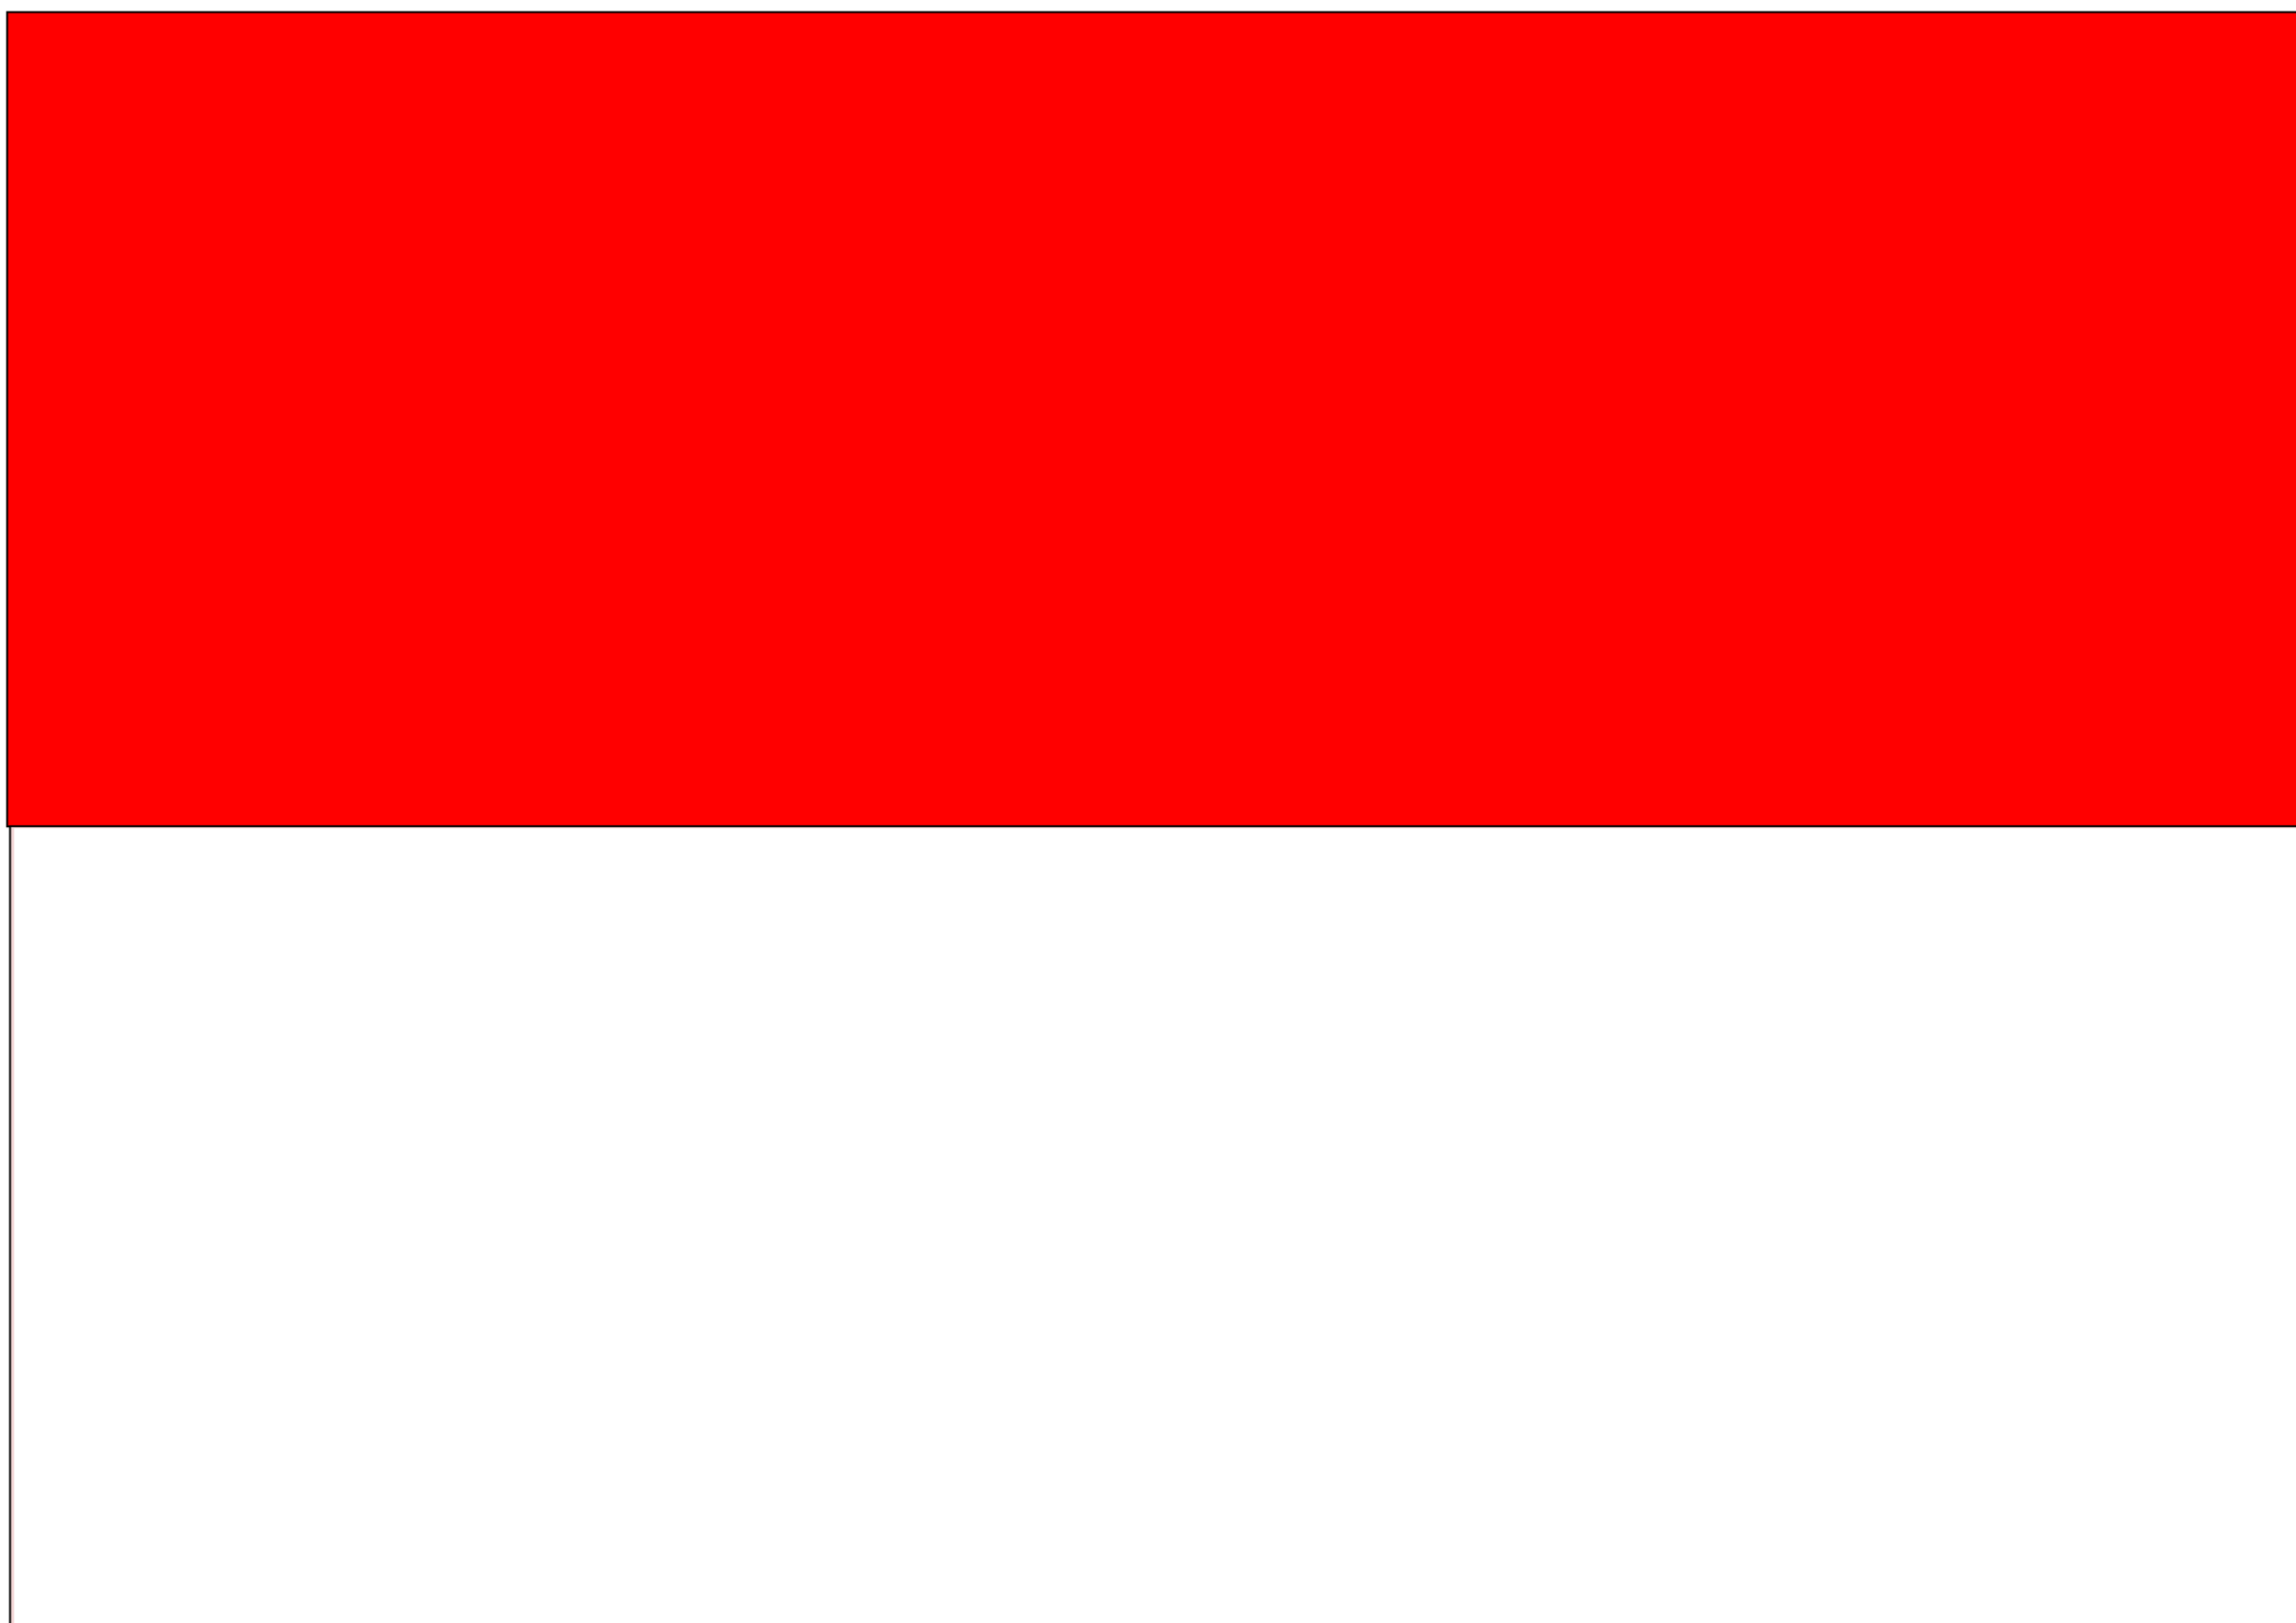 Indonesia flag by andii.pramono